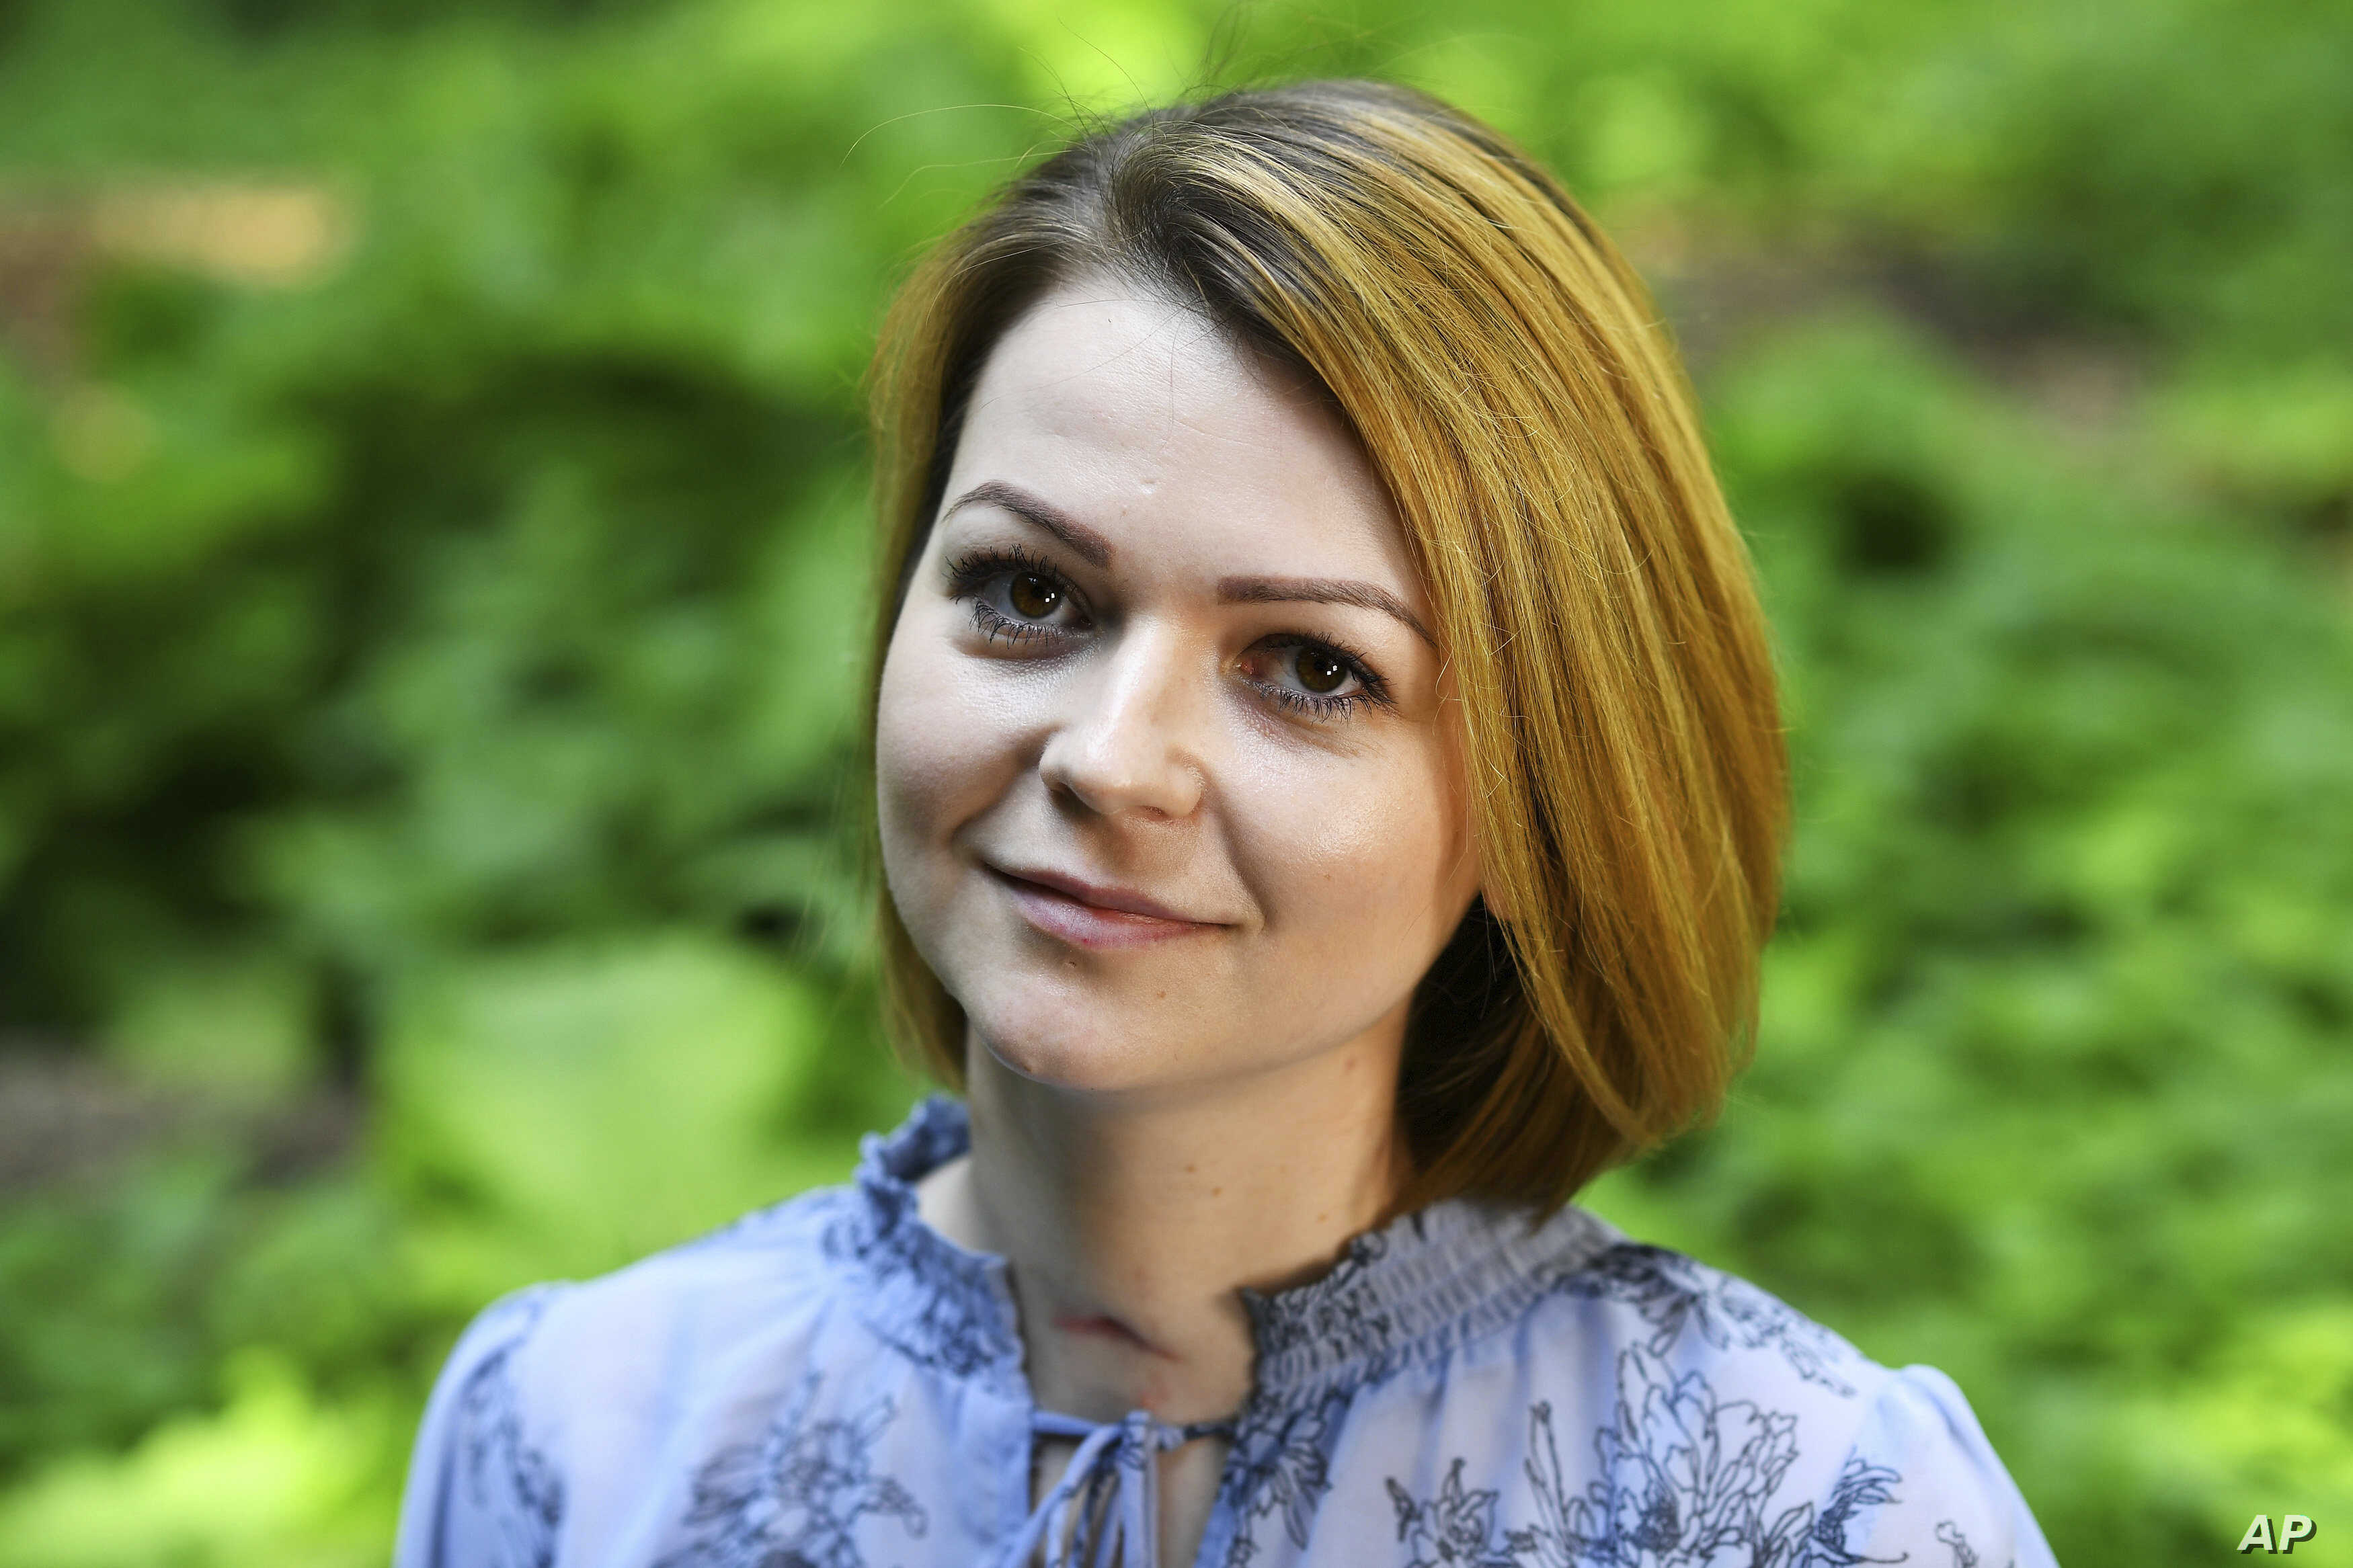 Yulia Skripal poses for the media during an interview in n London, May 23, 2018.